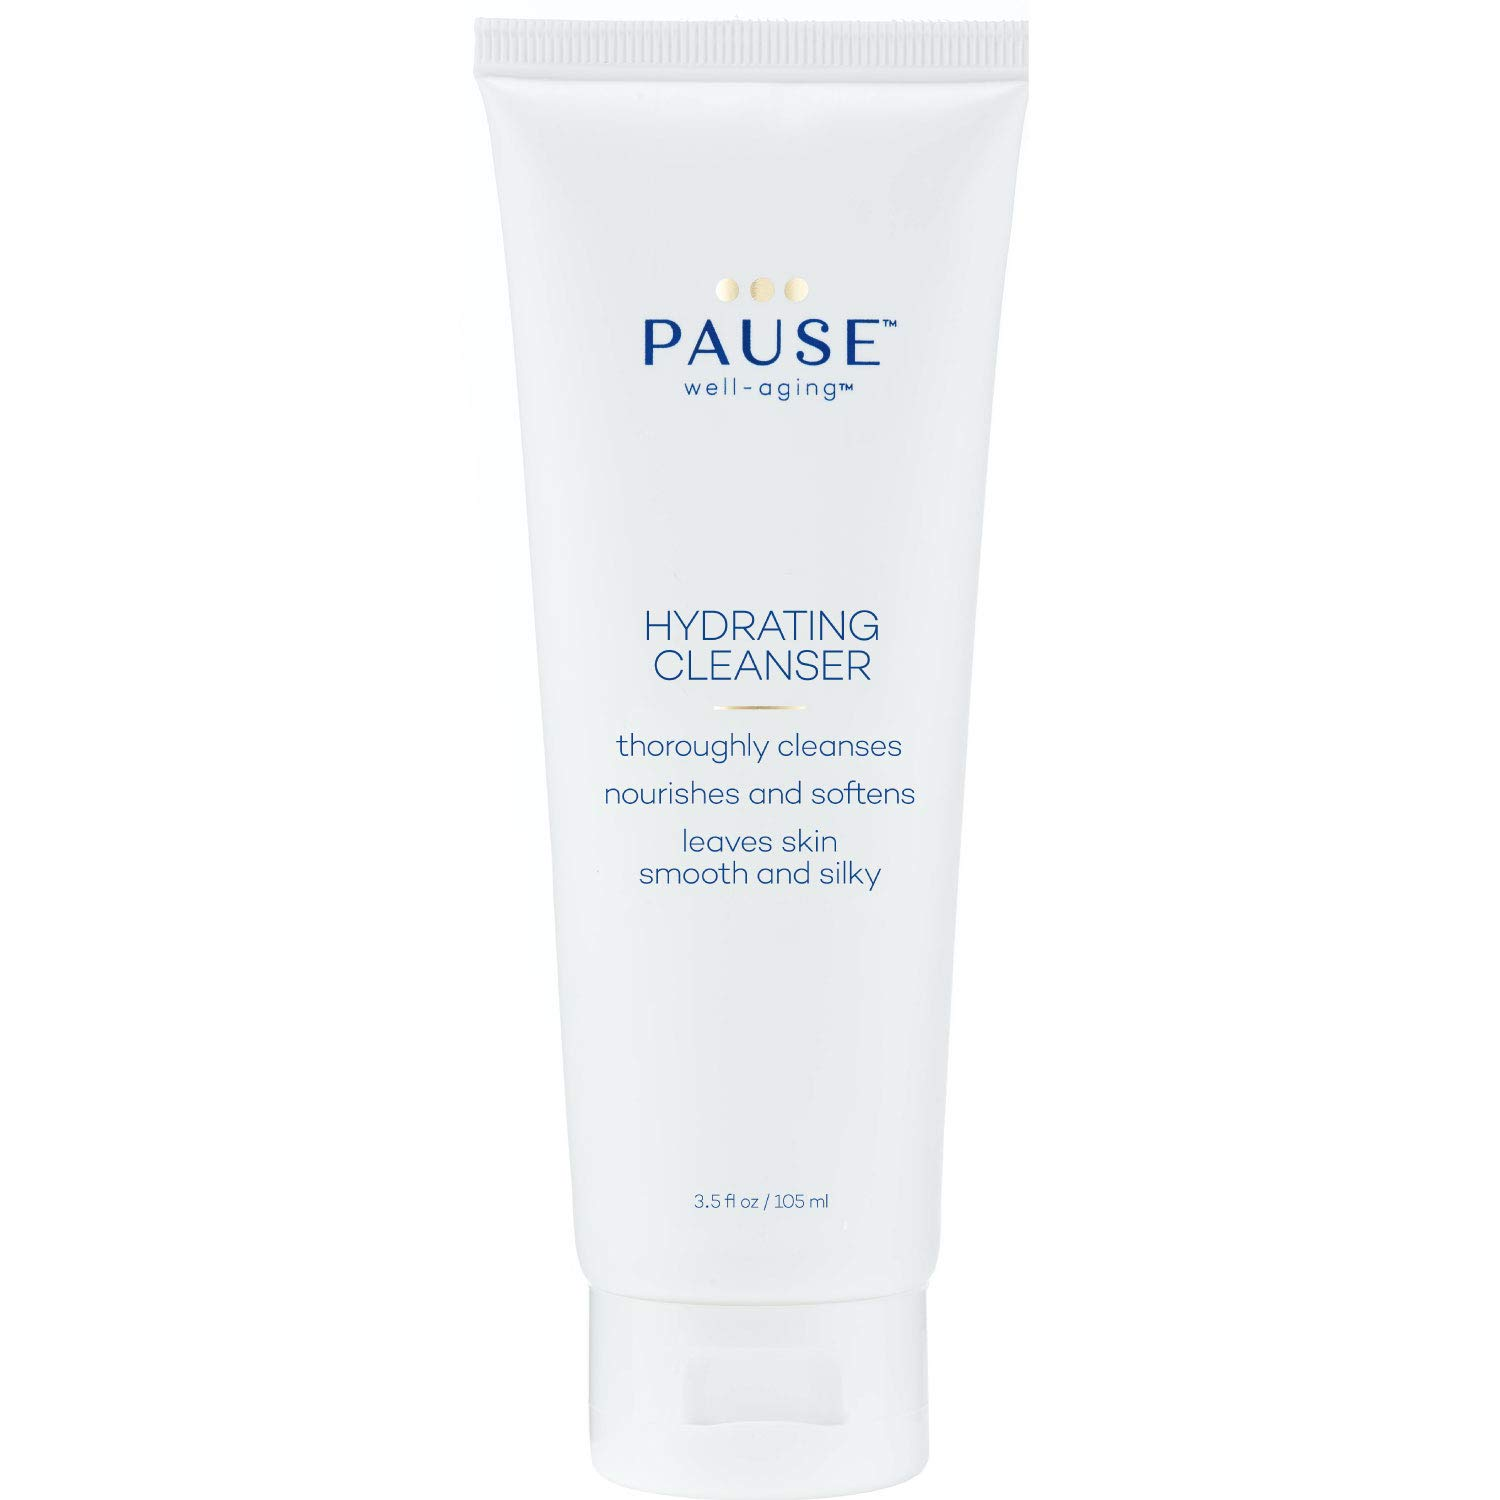 Pause Hydrating Cleanser